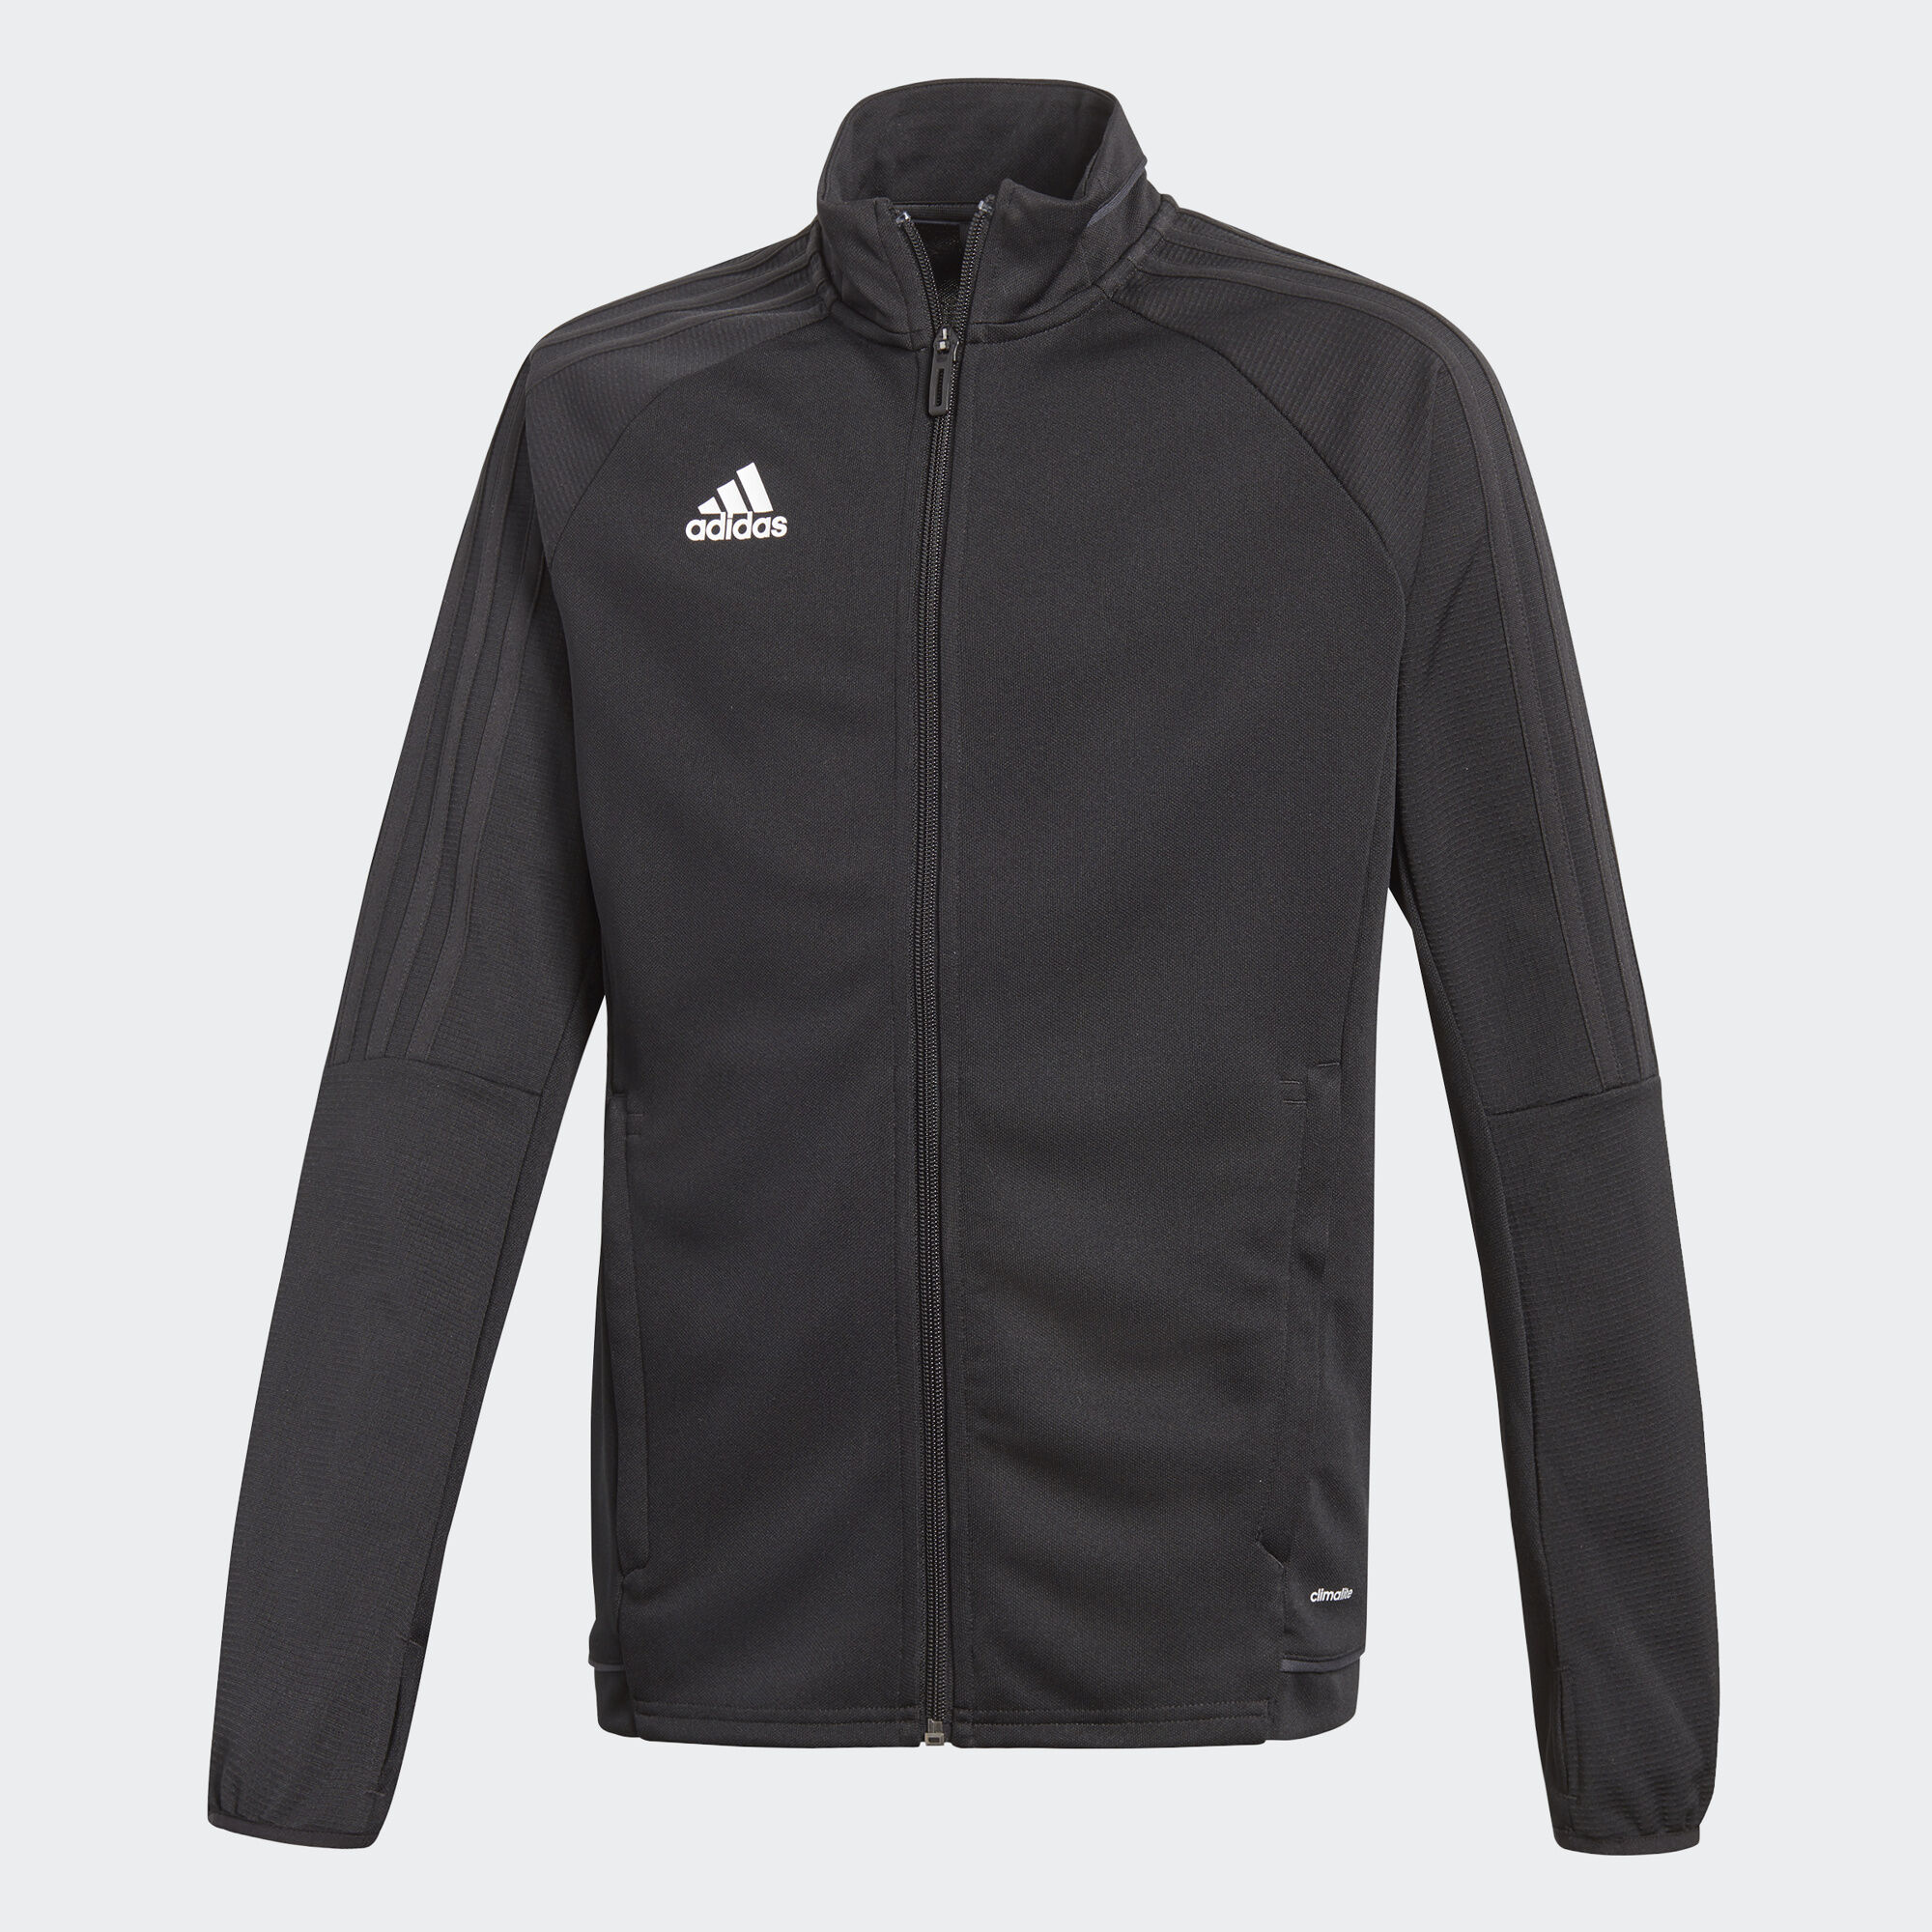 Related: new zealand all blacks jacket all blacks rugby jacket new zeland all blacks jacket all blacks rugby adidas all blacks jacket. Include description. Categories. Selected category All. London Fog Mens Jacket Sz 38S Black All Weather Water Repellant Outwewear Jacket. Brand New · London Fog · S. $ or Best Offer. Free Shipping.